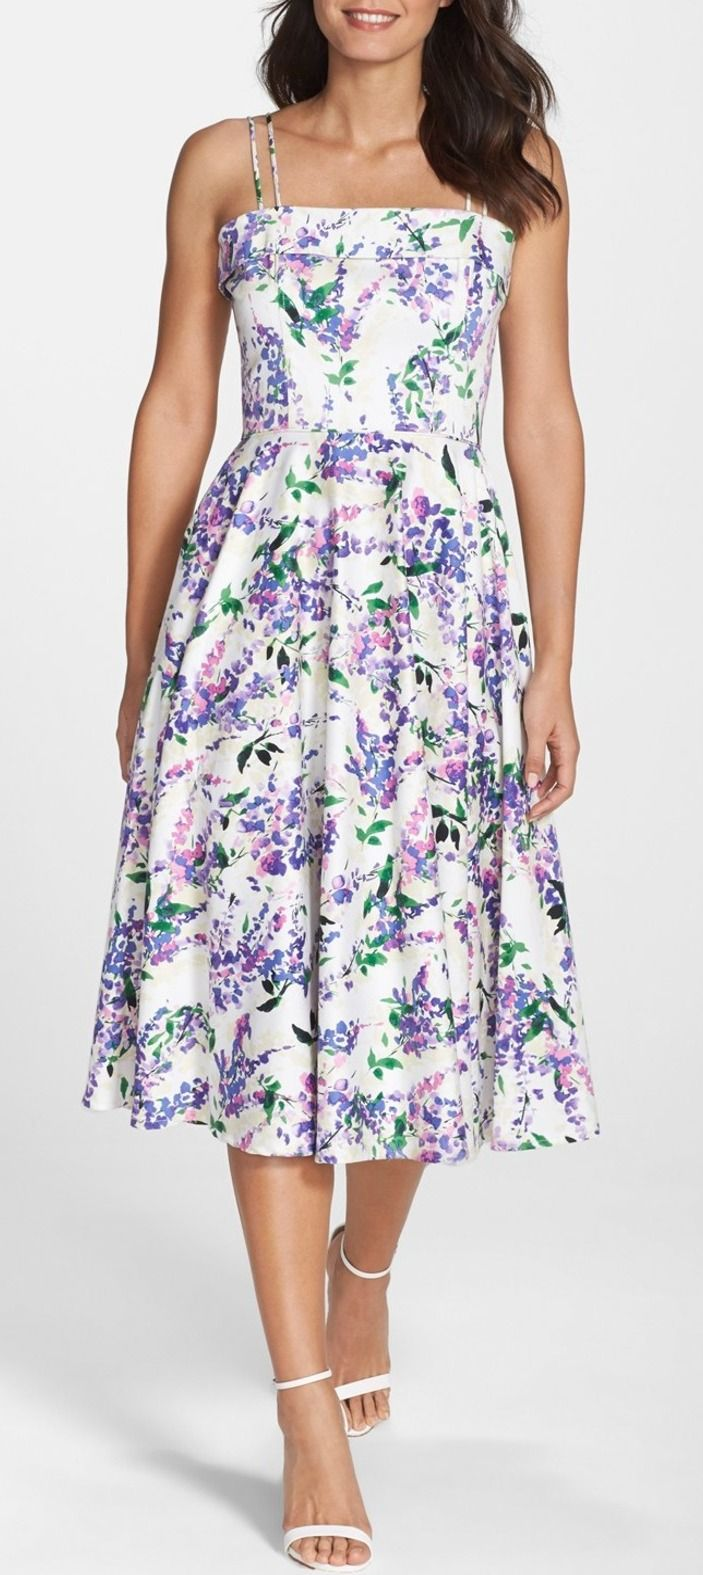 Maggy London | Floral Print Fit & Flare Midi Dress |  Sponsored by Nordstrom Rack.